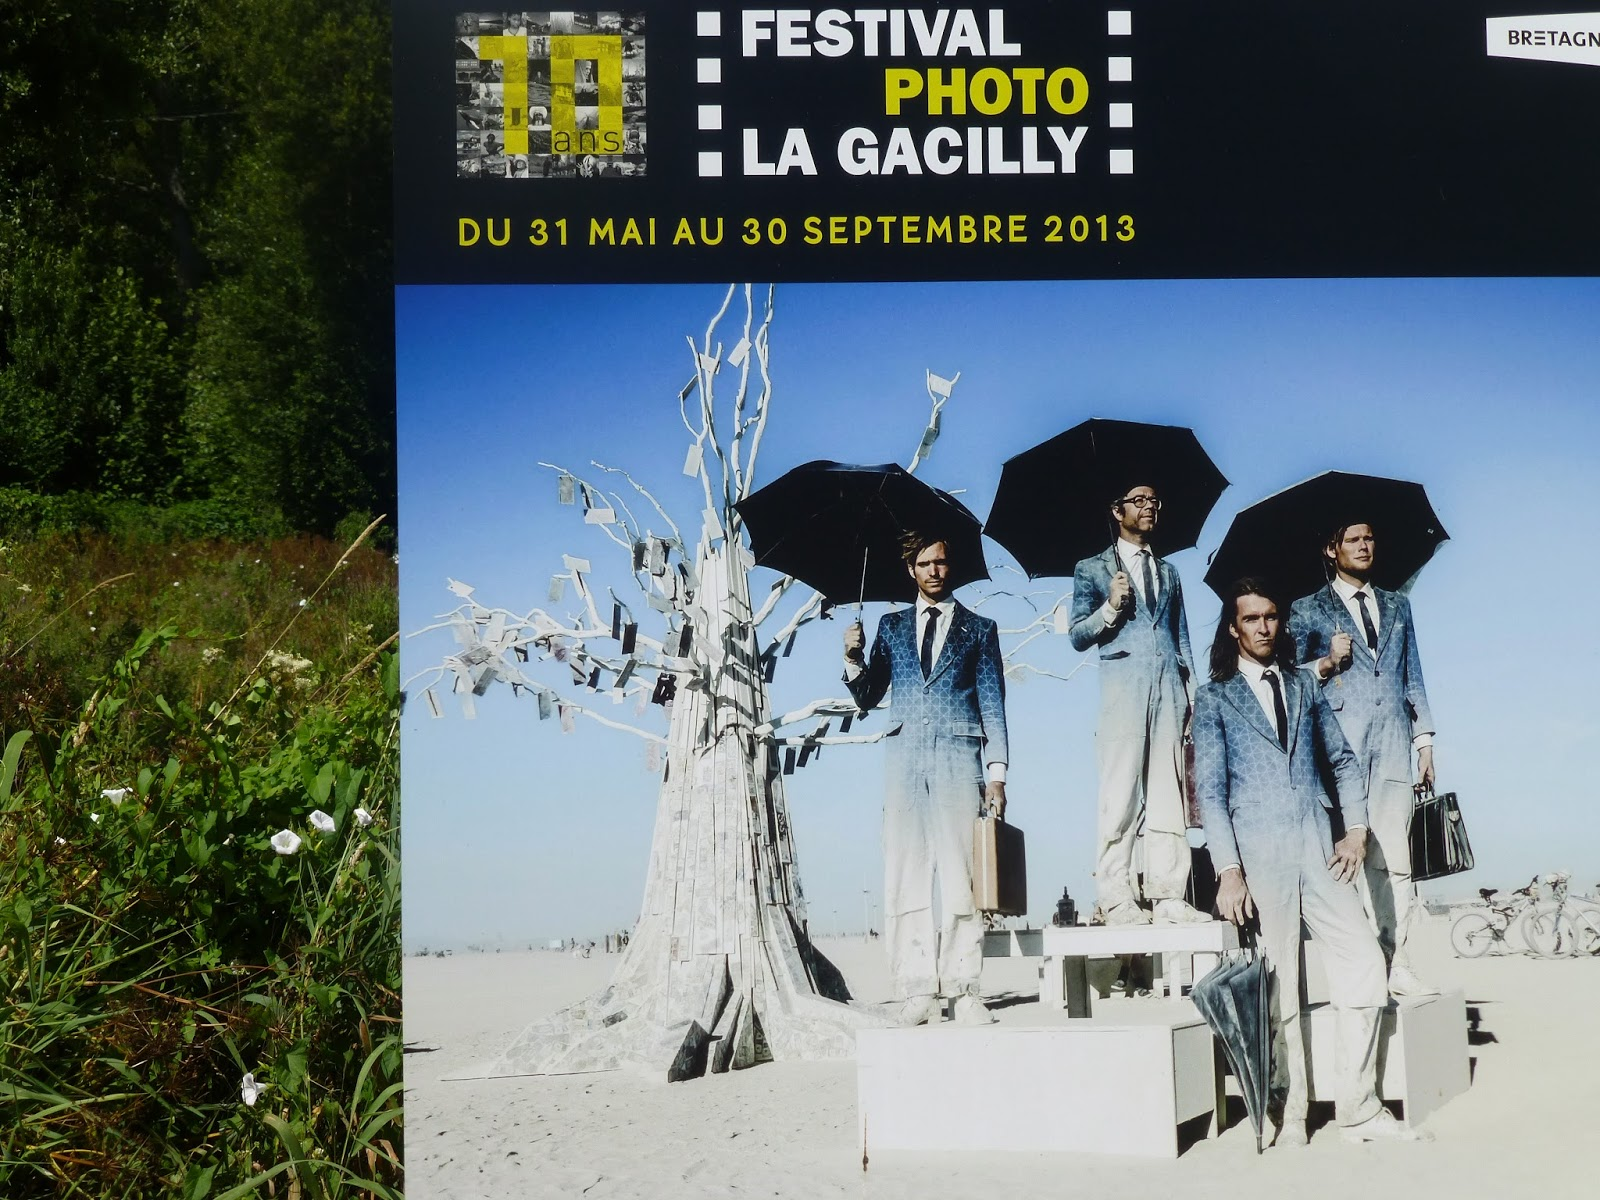 Carolinelamalouine la gacilly festival photos peuples et nature - Festival photo la gacilly ...